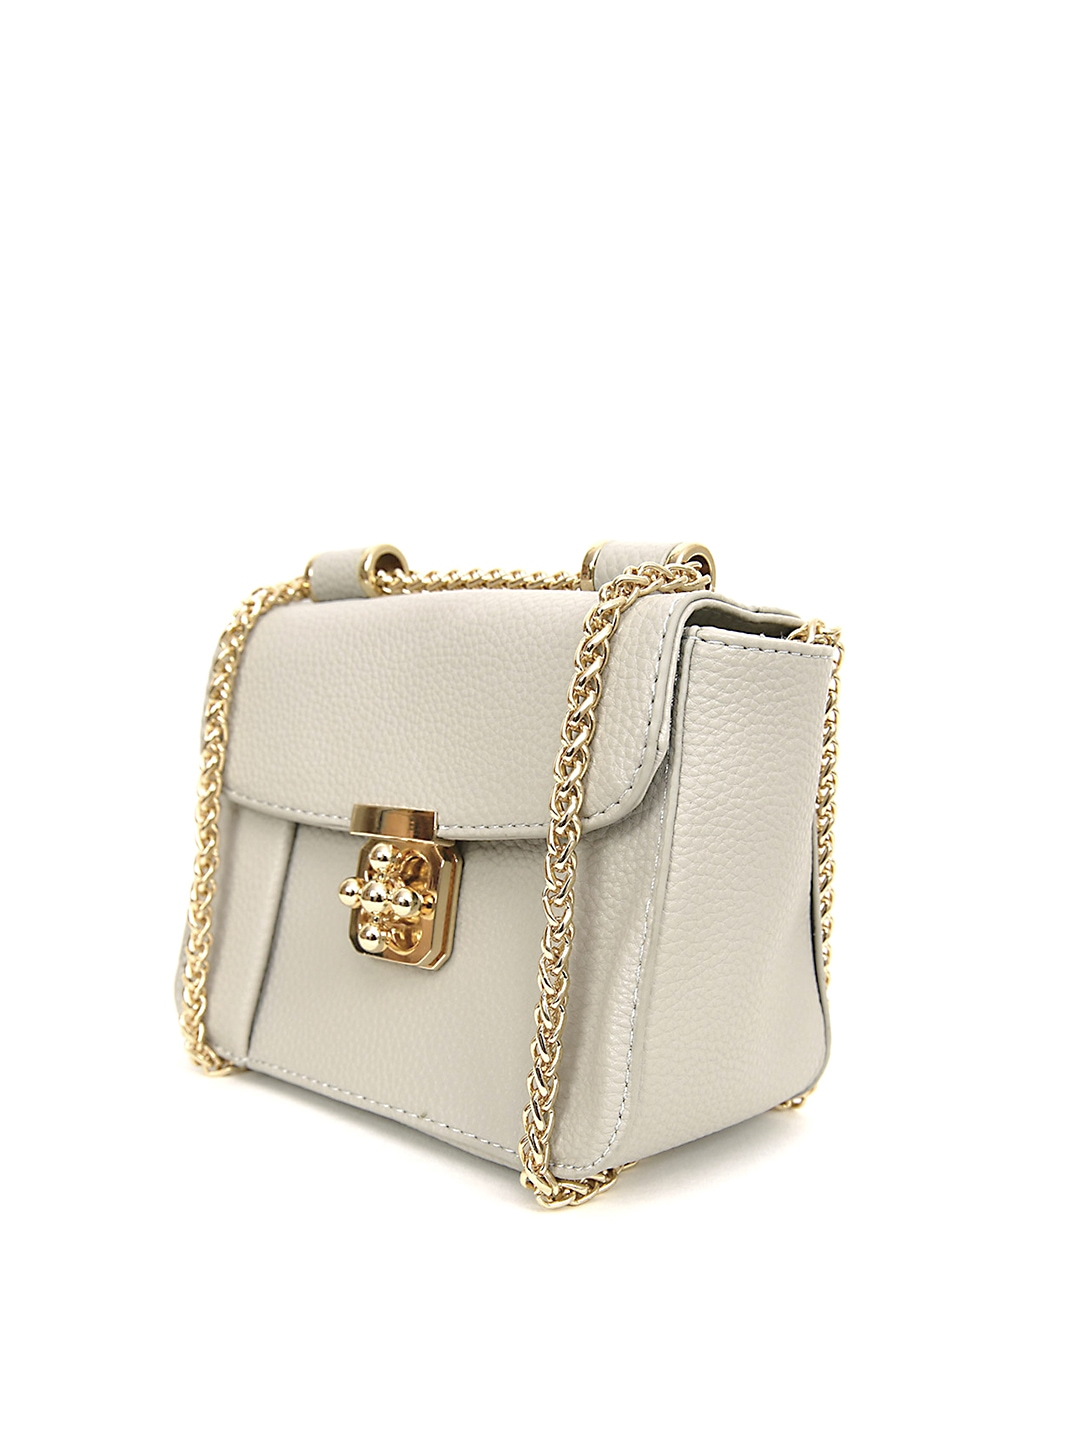 Buy AQ Beige Sling Bag With Chain Strap – Handbags for Women  d0f4c1be904e2